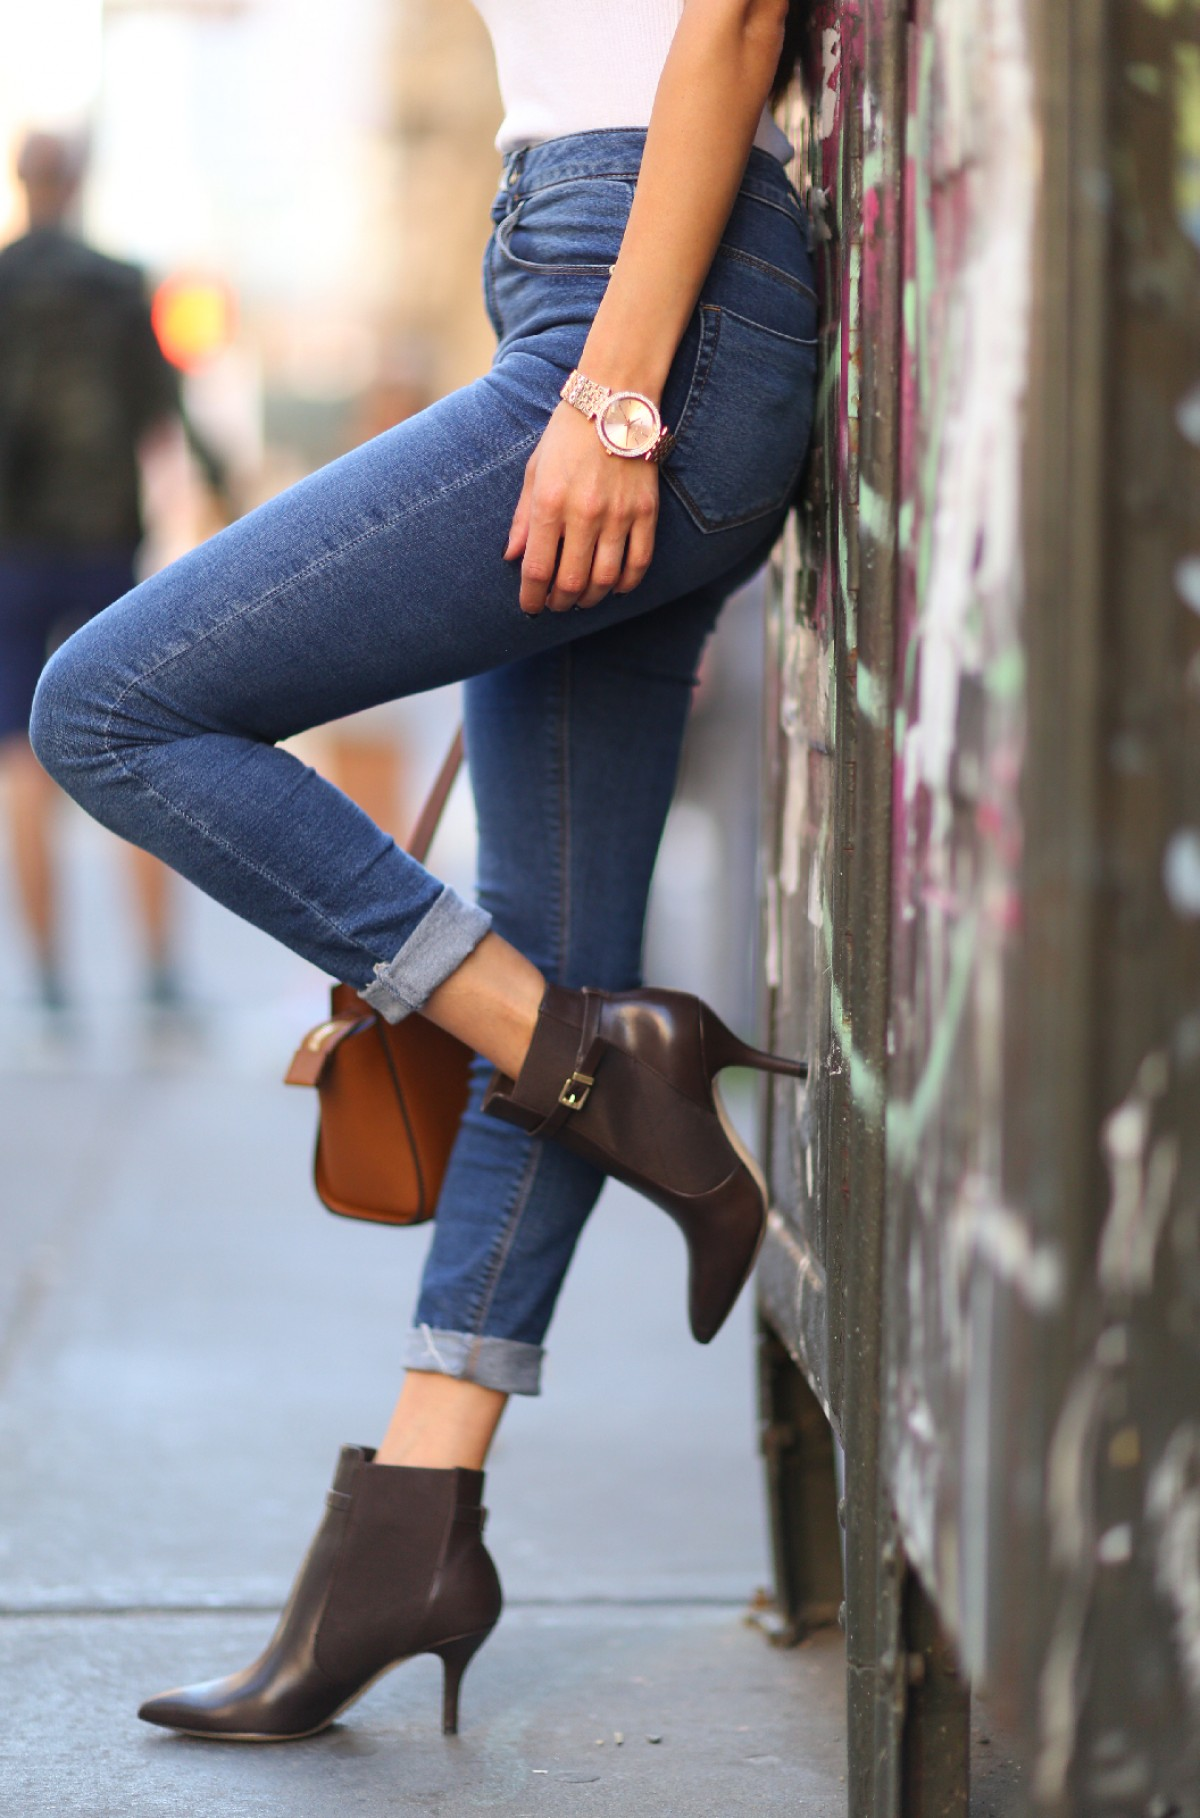 High waisted denim jeans are the perfect match with heeled leather ankle boots. Via Neginmirsalehi.com. Boots: Woods.